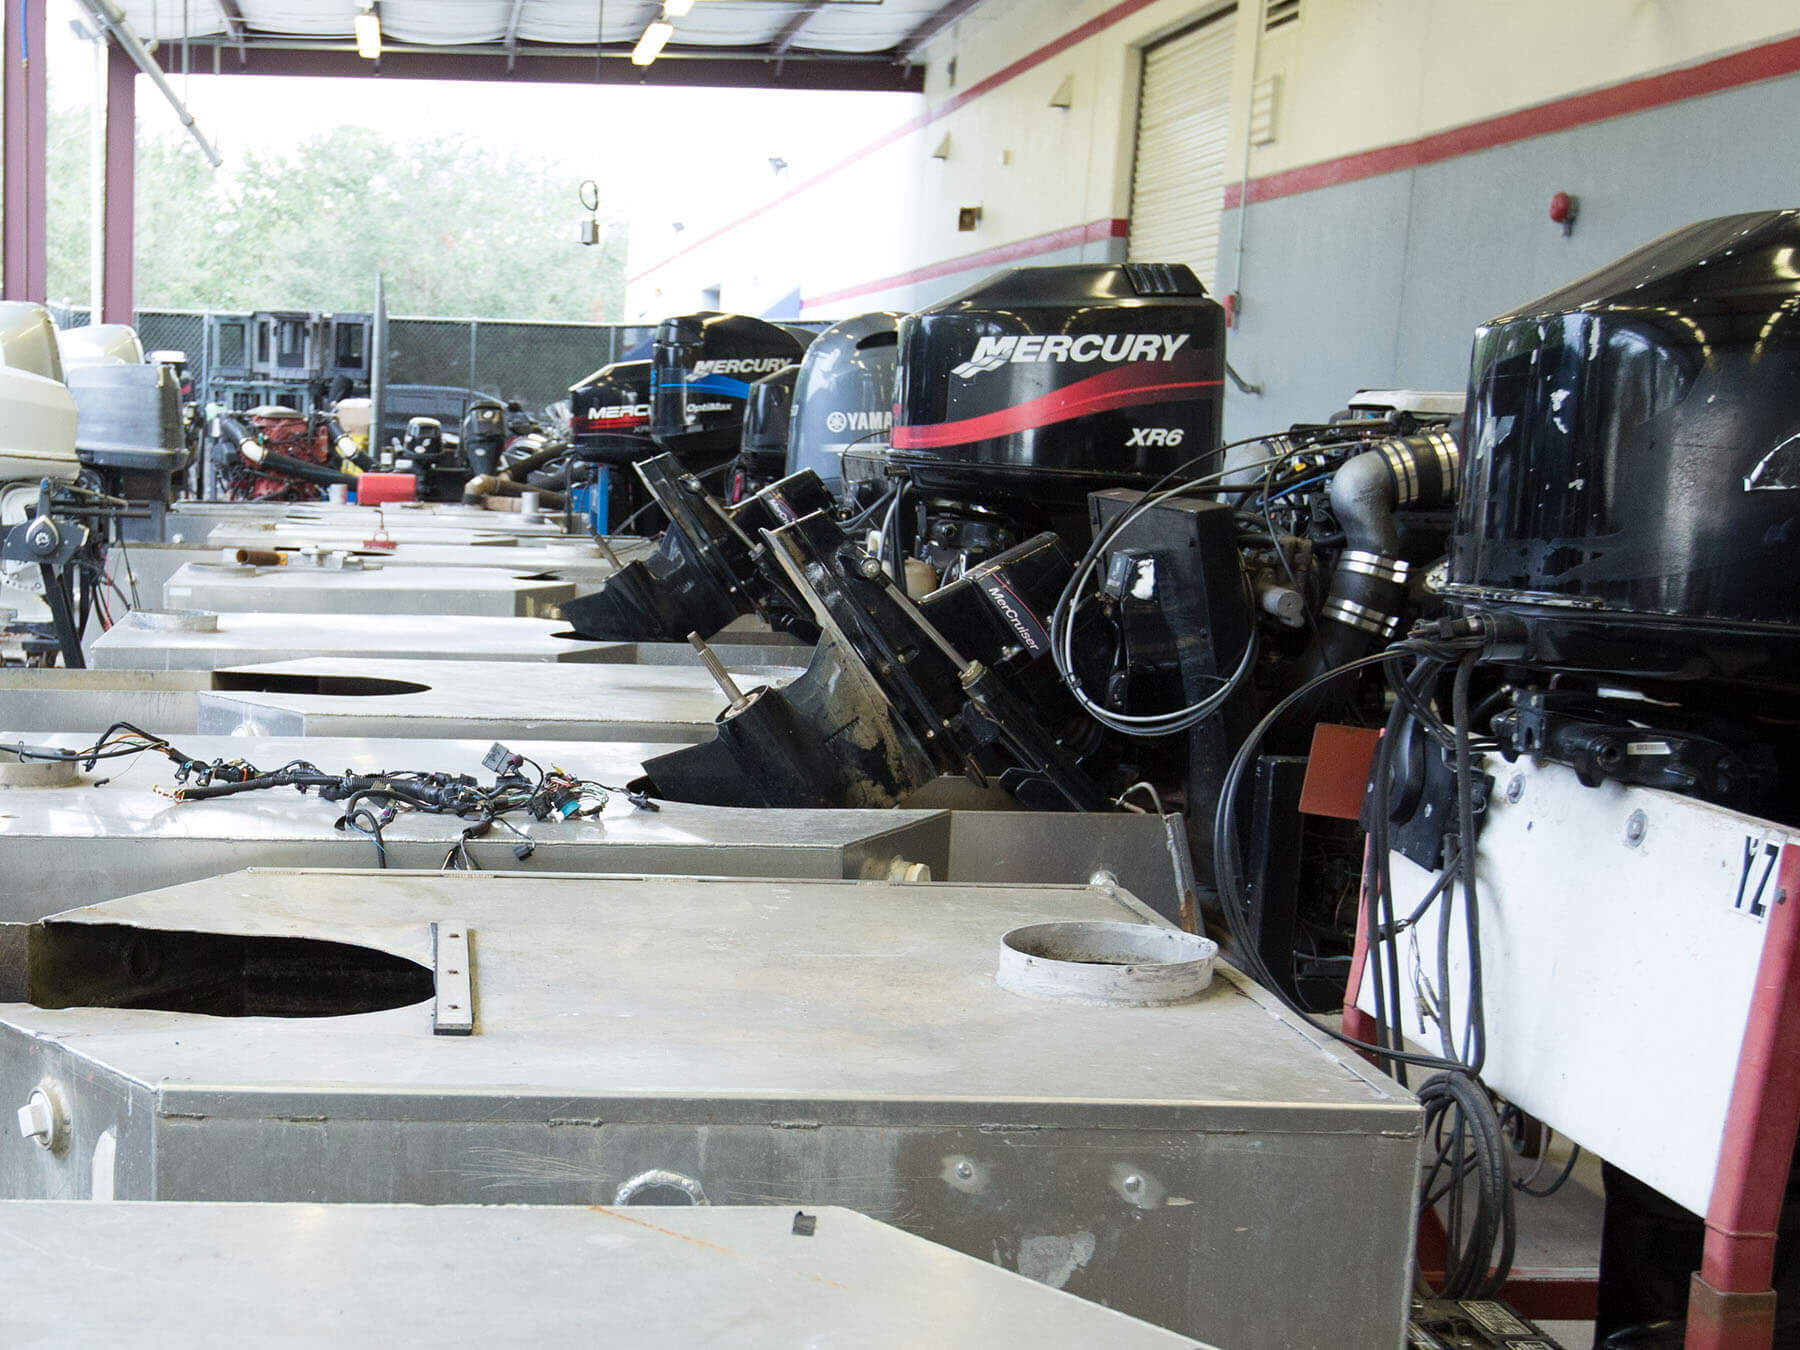 Mercury marine engines outside of the classroom